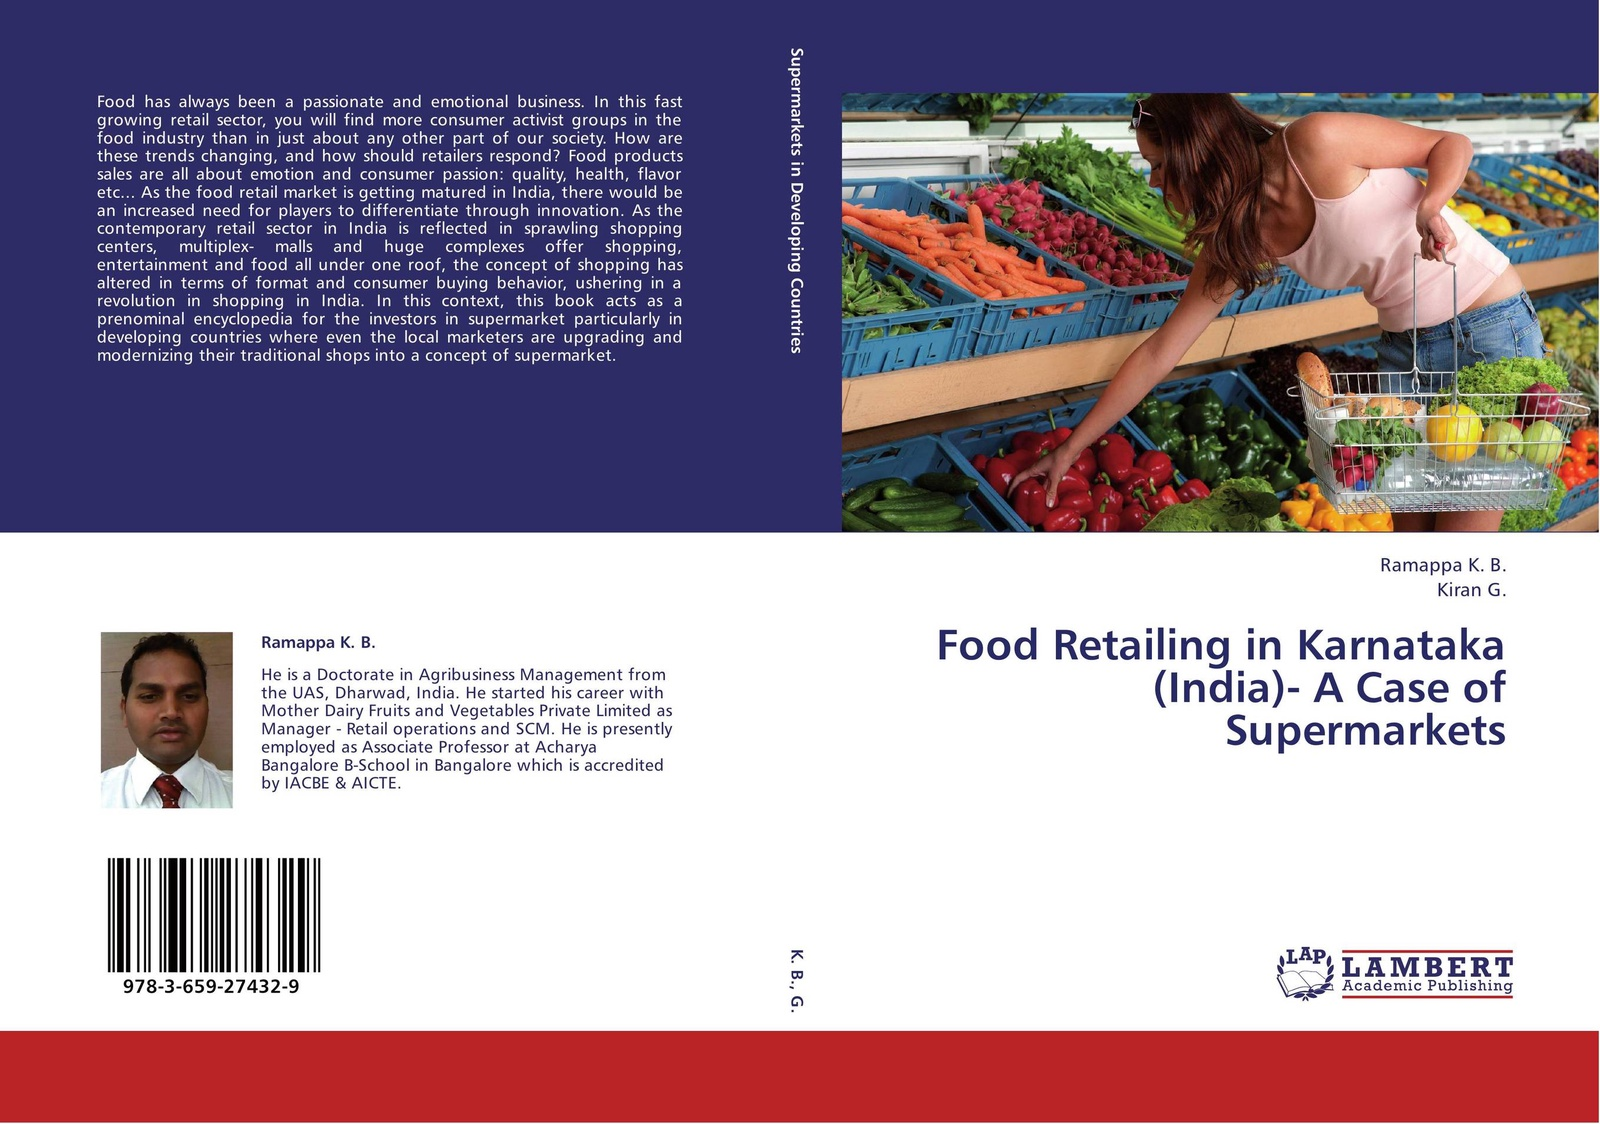 Ramappa K. B. and Kiran G. Food Retailing in Karnataka (India)- A Case of Supermarkets willem norde nanotechnology in the agri food sector